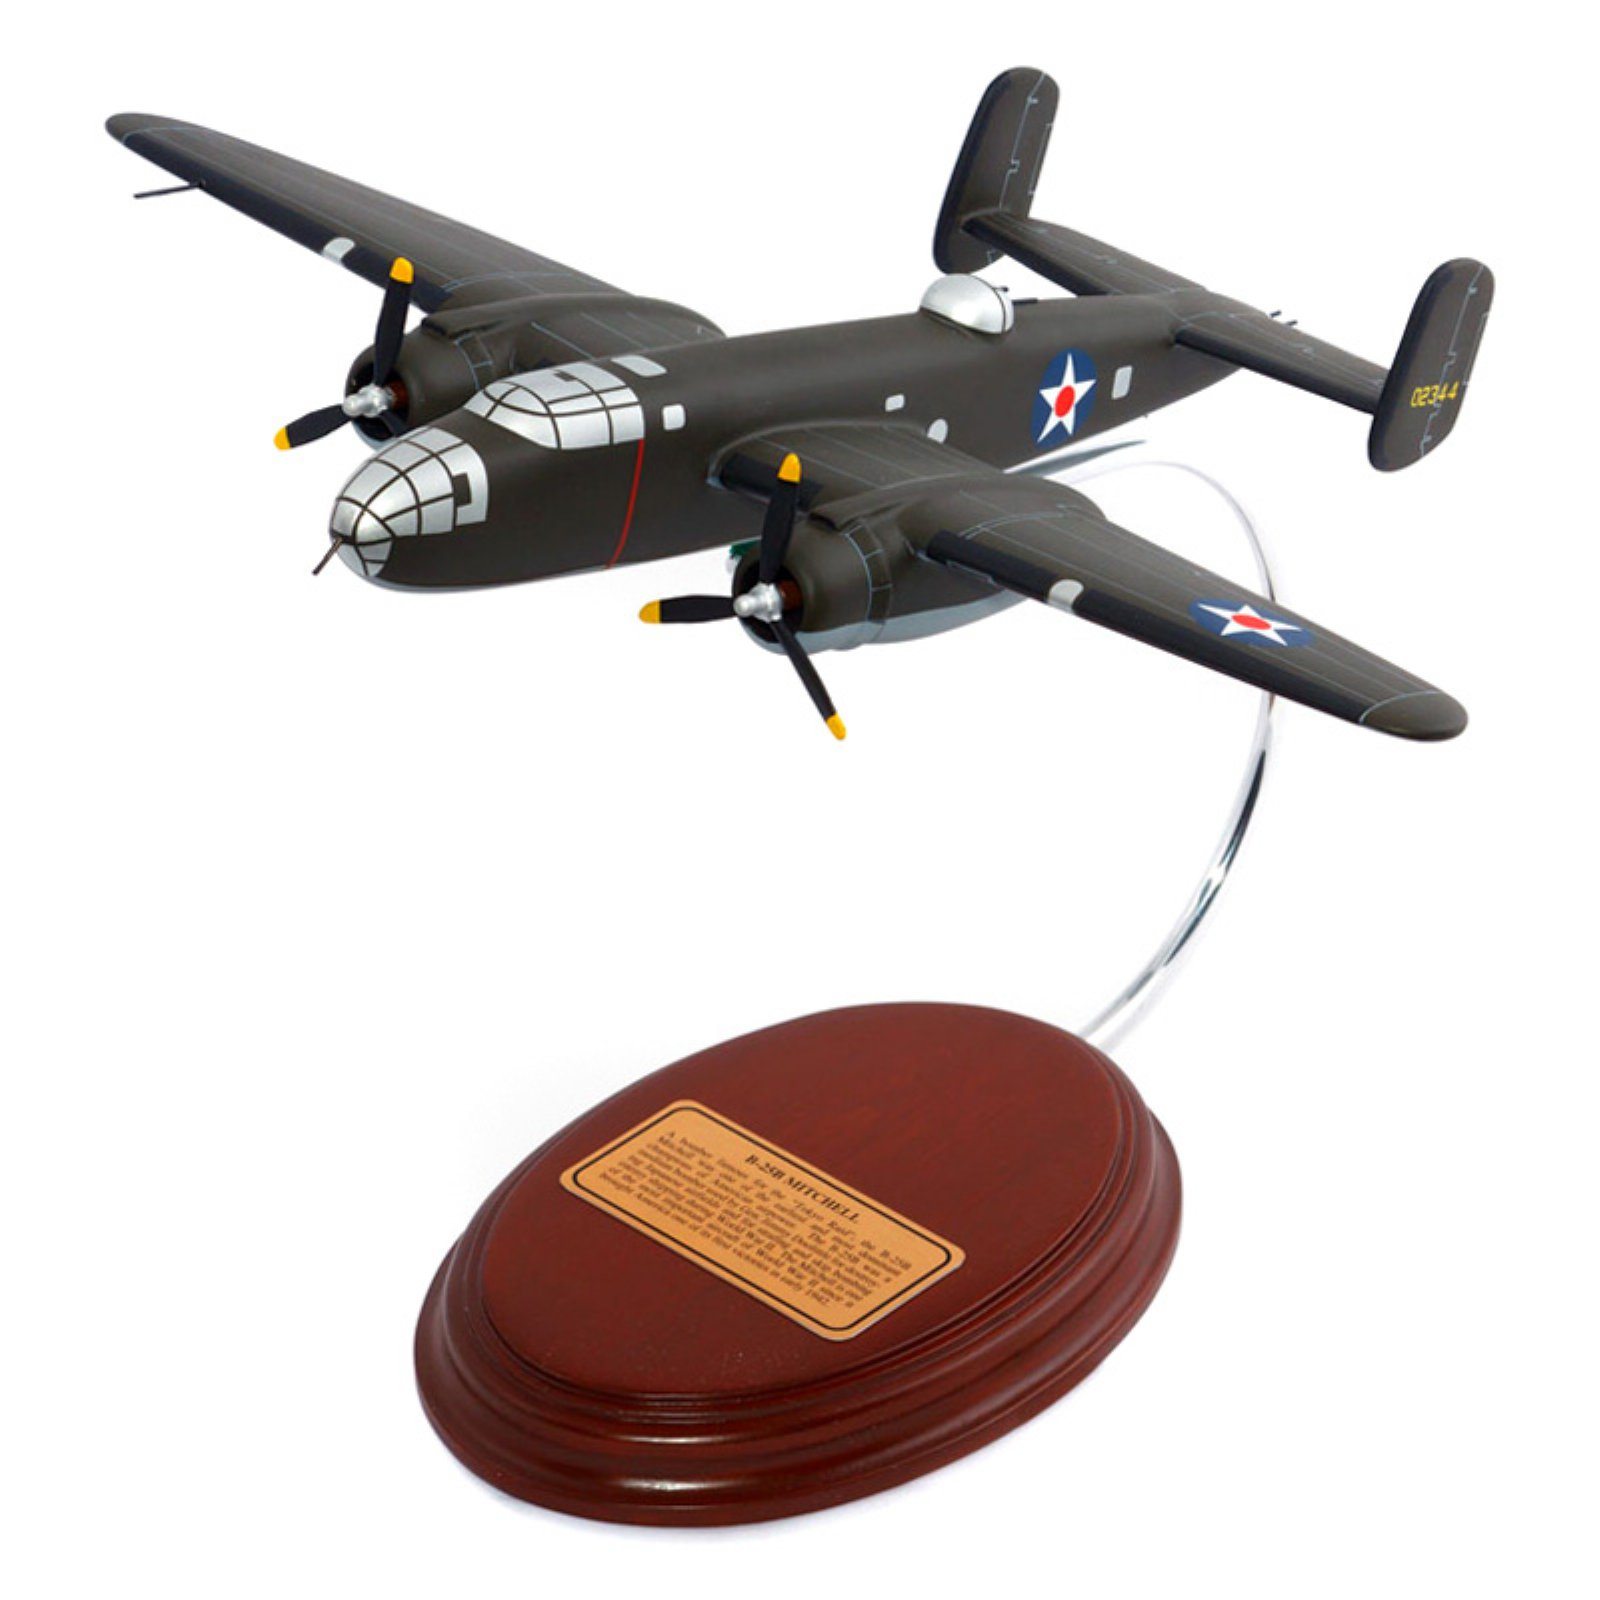 Daron Worldwide Wright R 2600s Engines B-25B Mitchell 1/65 Scale Model Plane